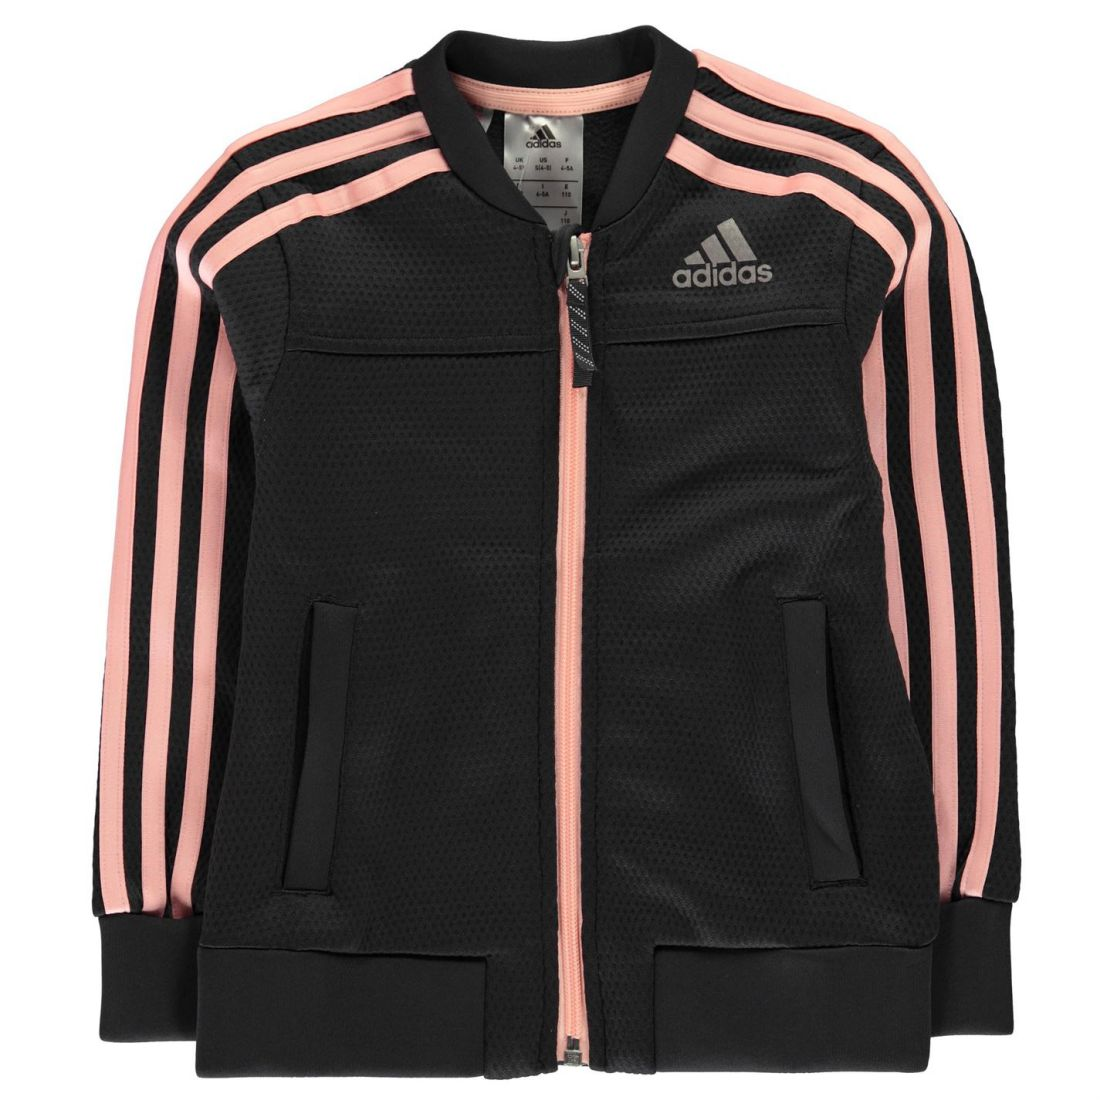 Details about adidas Kids Girls PES Cover Up Jacket Child Tracksuit Top Coat Long Sleeve